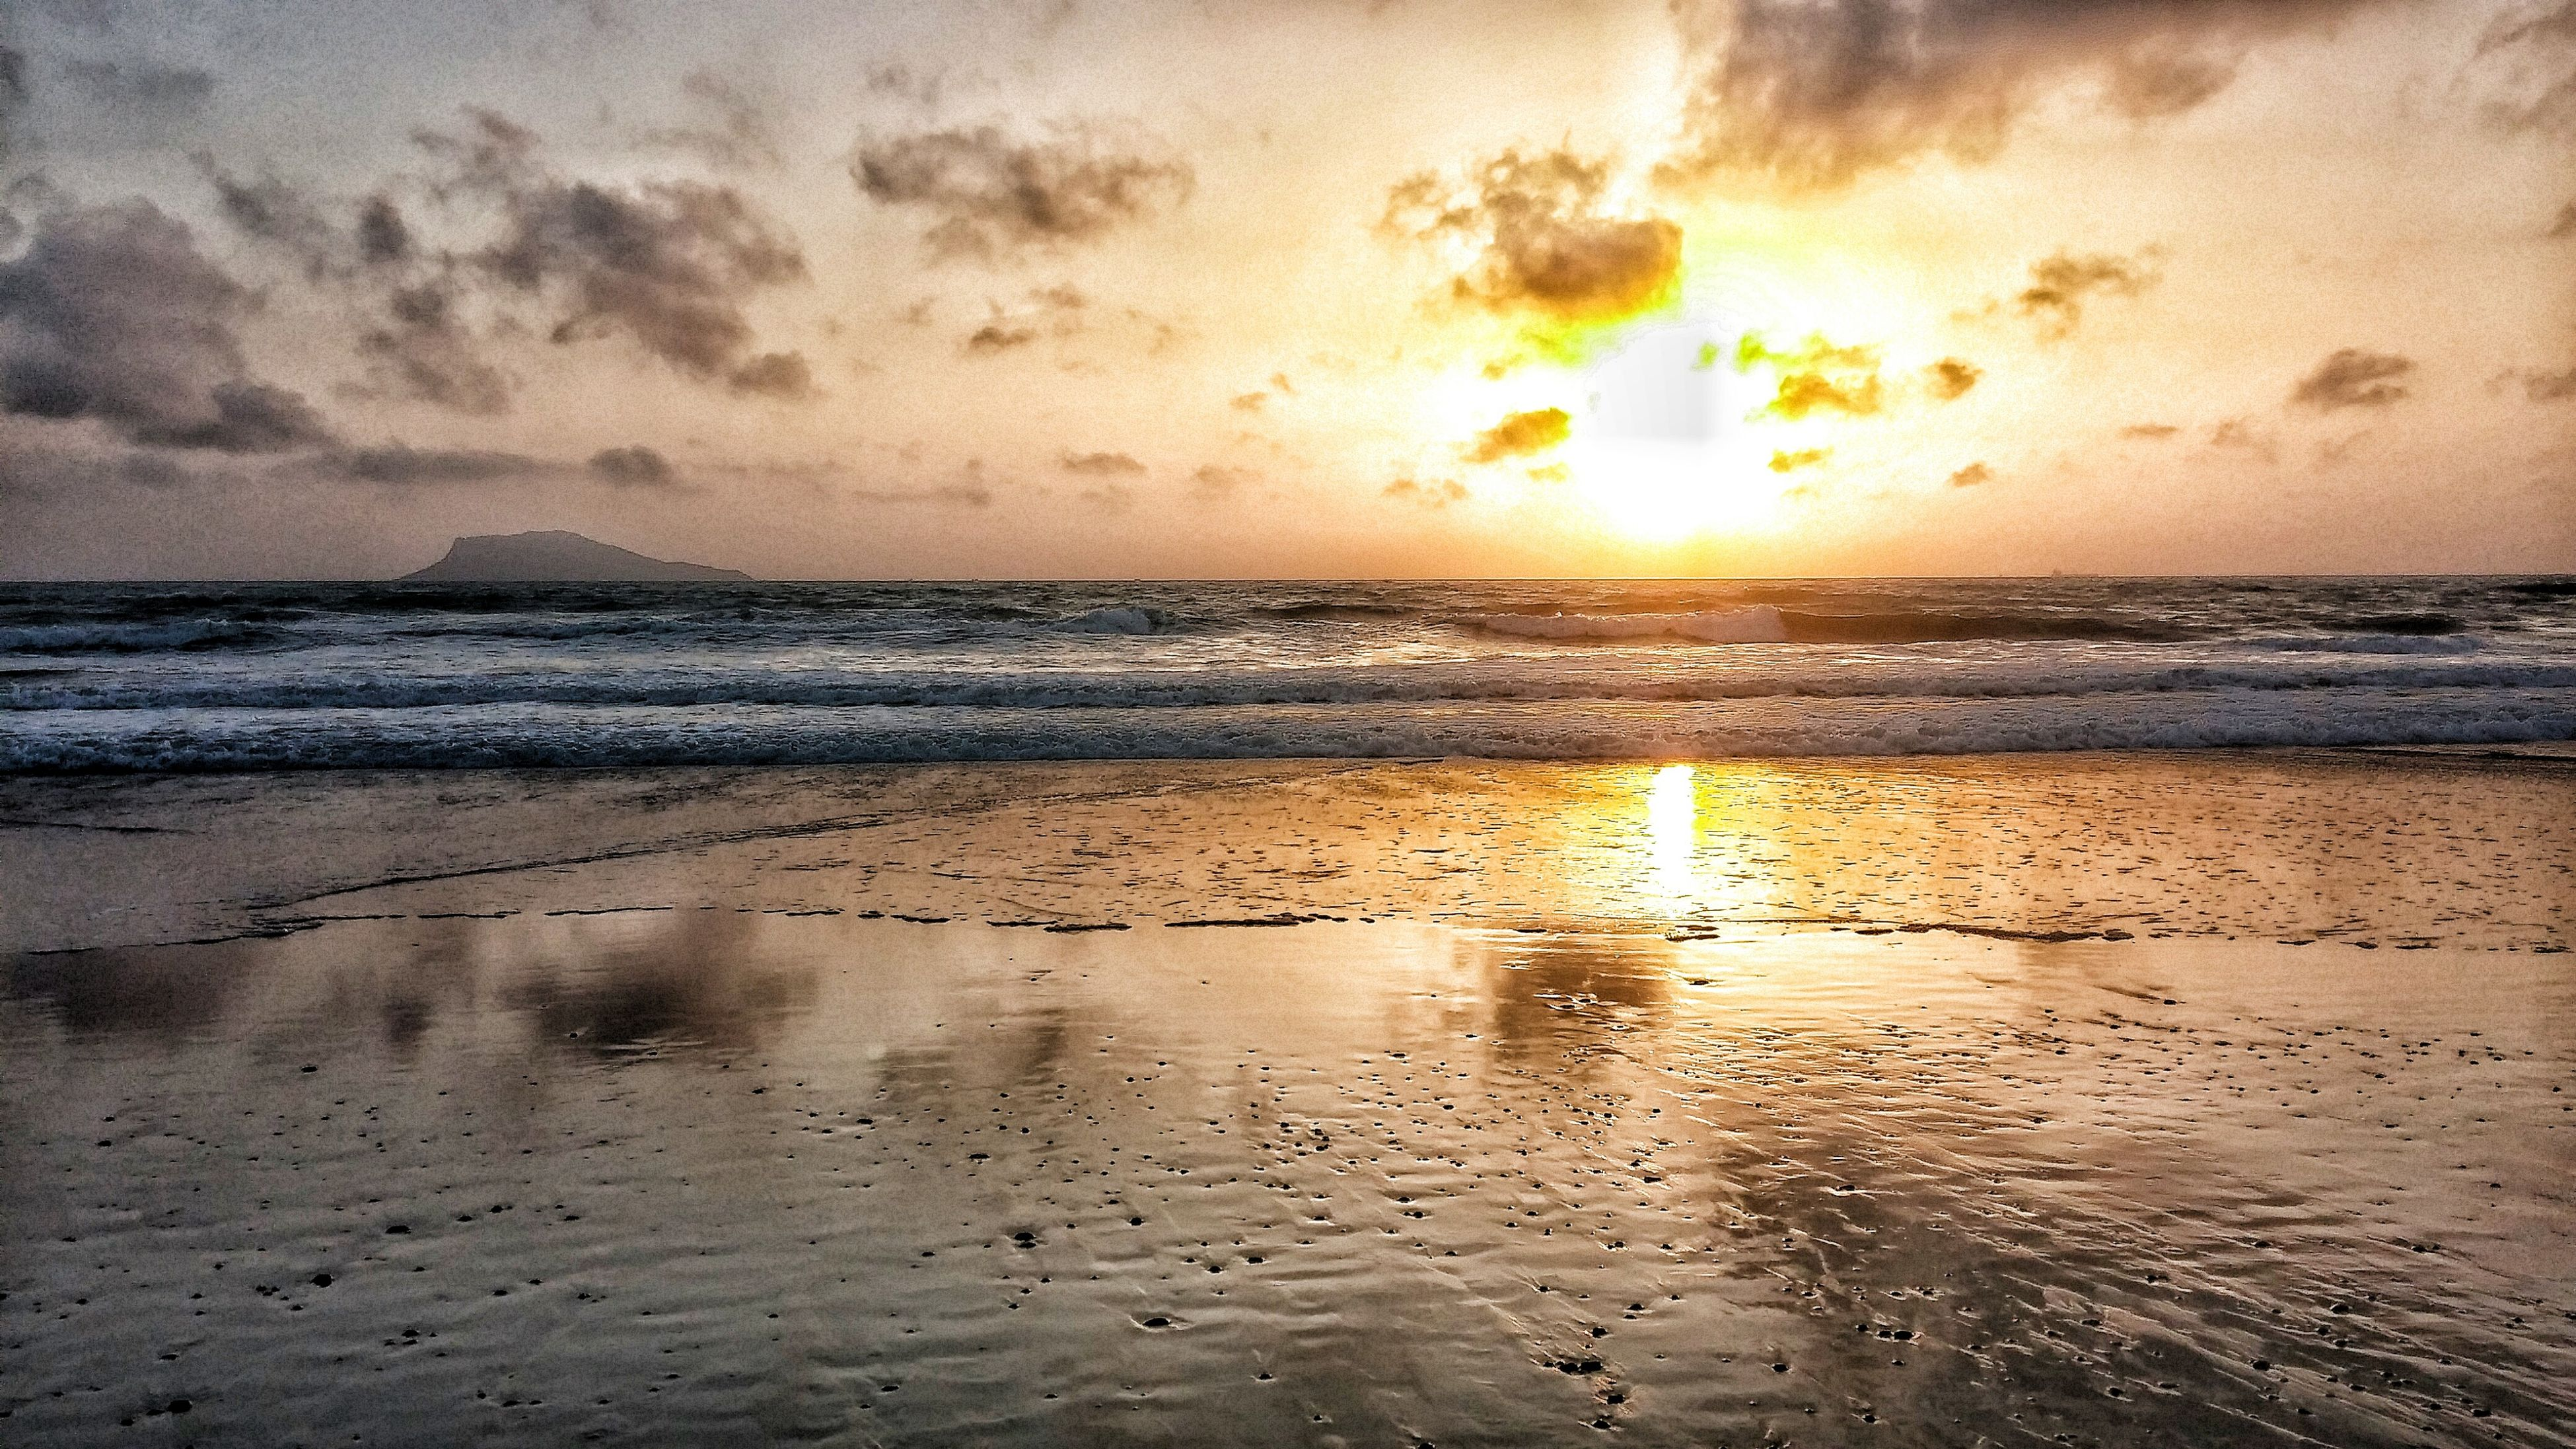 sunset, sea, beach, water, scenics, tranquil scene, beauty in nature, horizon over water, tranquility, shore, idyllic, sky, sun, reflection, nature, cloud - sky, wave, majestic, orange color, vacations, seascape, non-urban scene, calm, outdoors, summer, vibrant color, remote, tourism, tide, no people